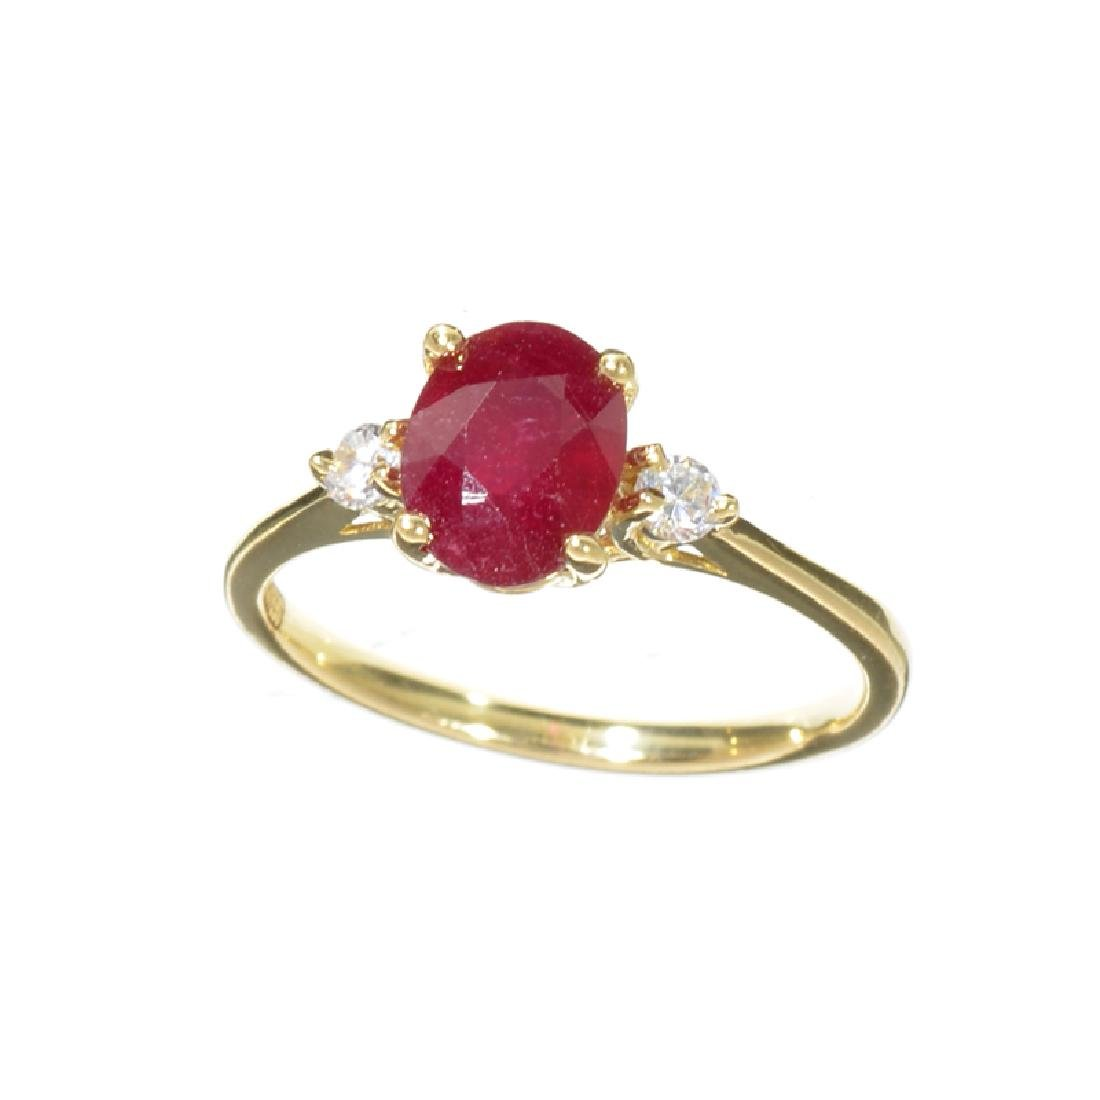 APP: 1k Fine Jewelry 14KT Gold, 1.53CT Ruby And White